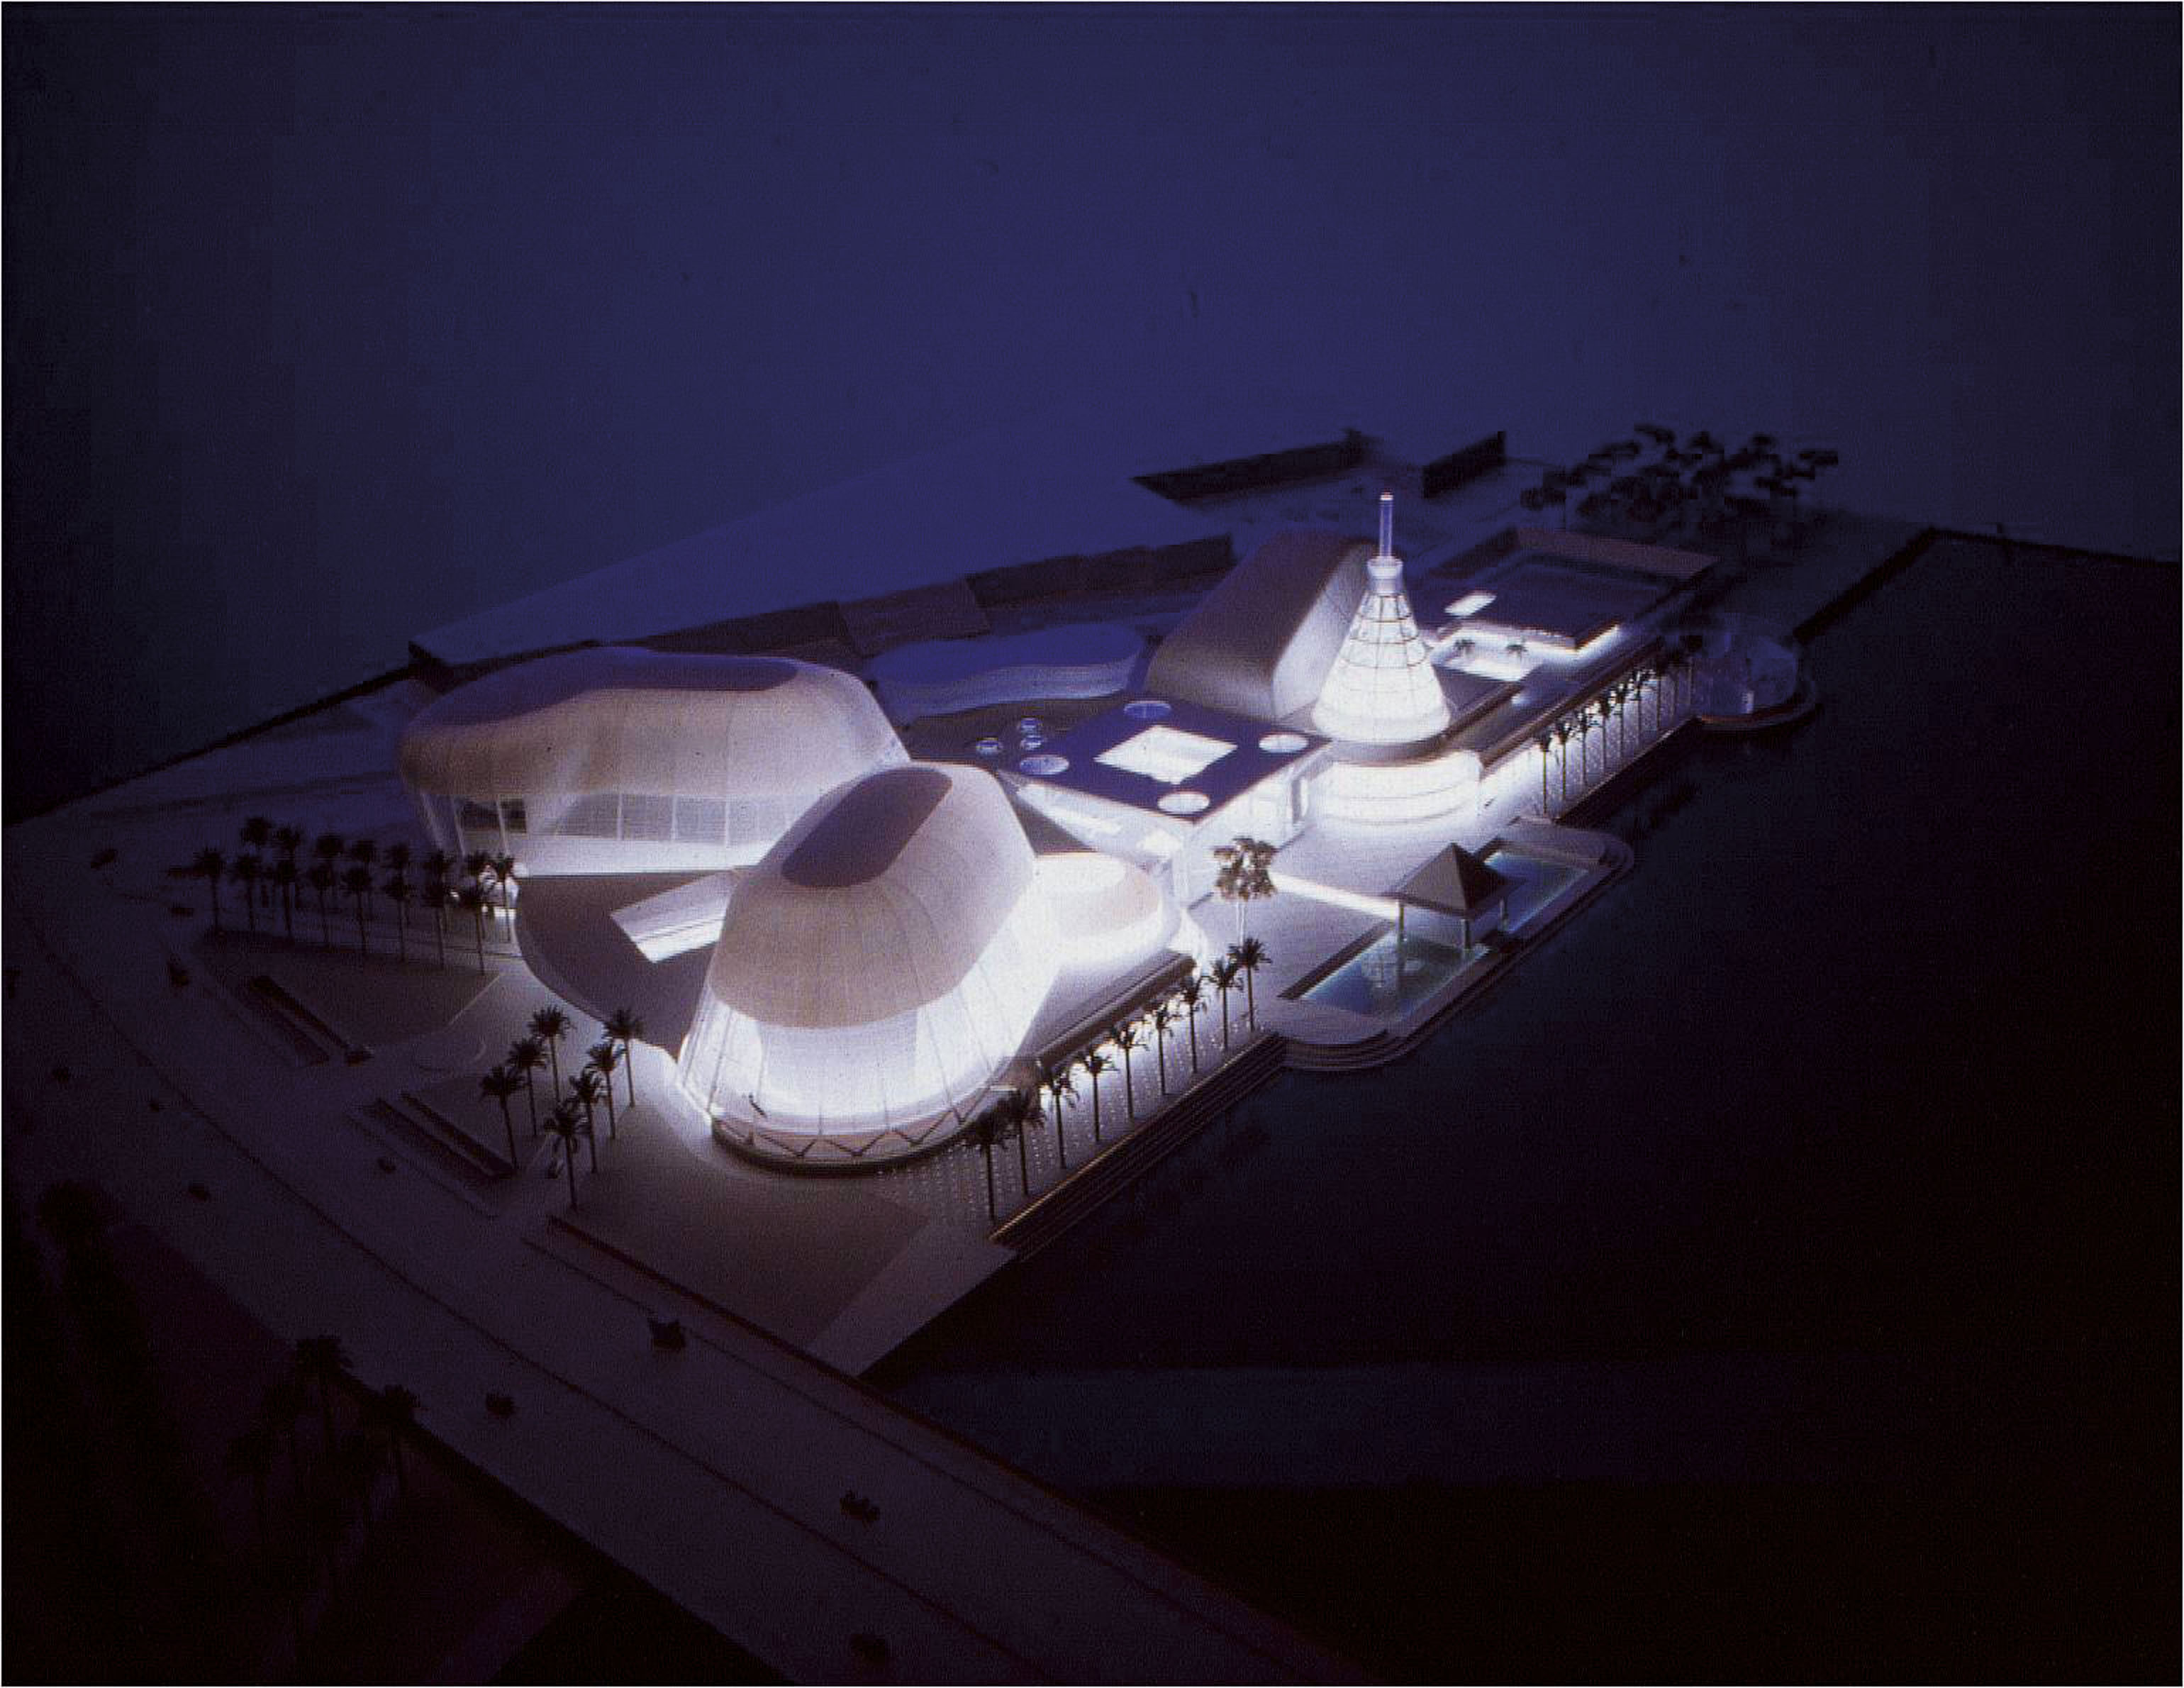 Early model of Esplanade from 1994 Photo courtesy: Esplanade – Theatres on the Bay